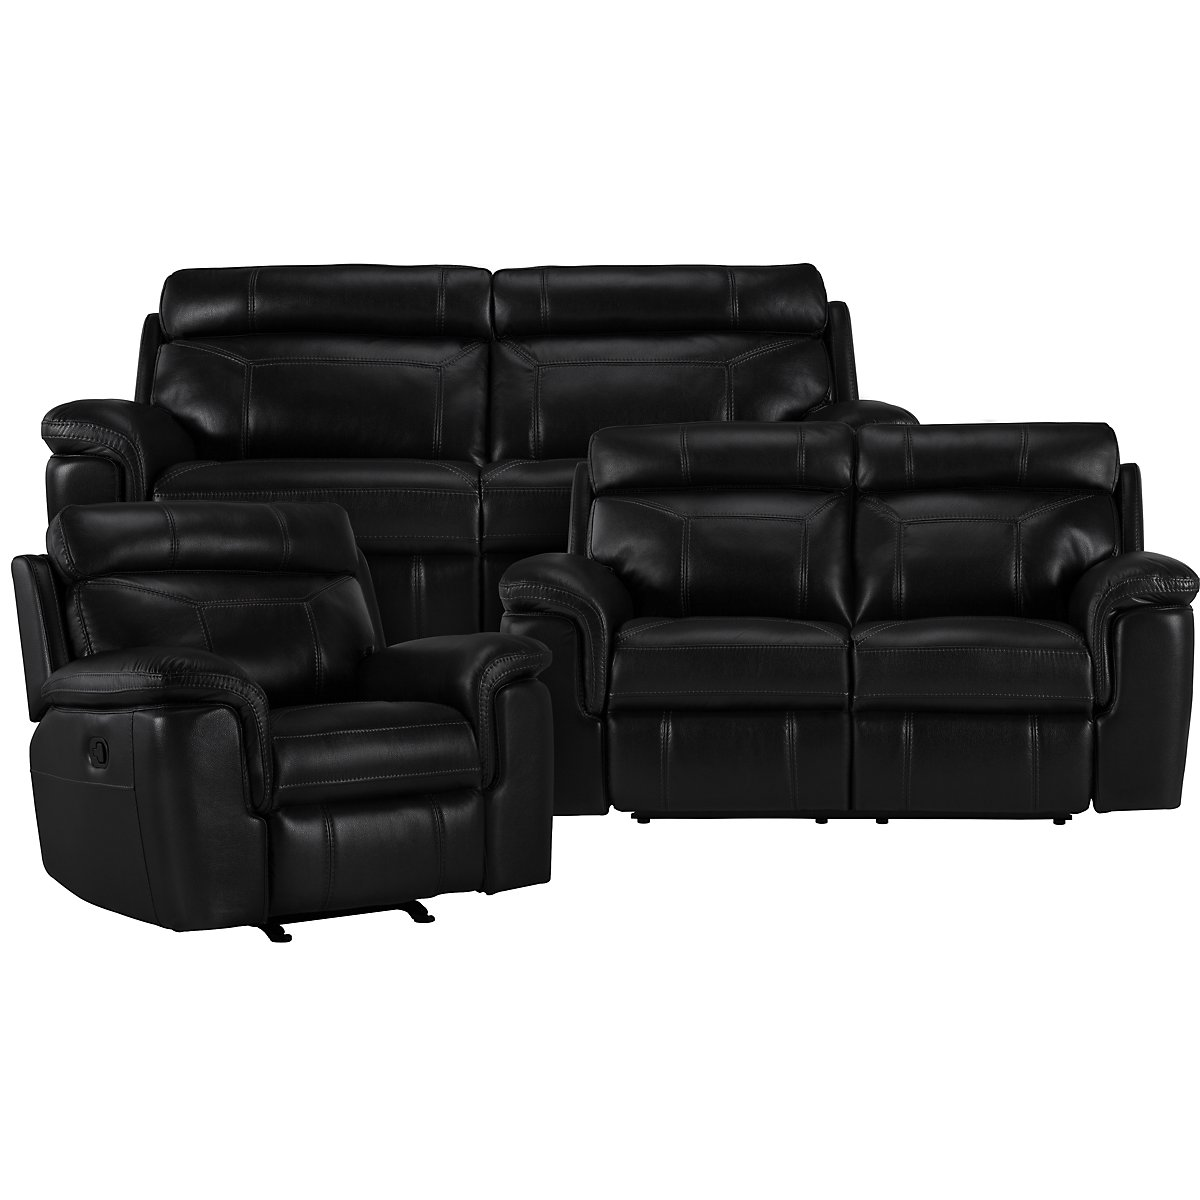 Gamma Black Microfiber Manually Reclining Living Room